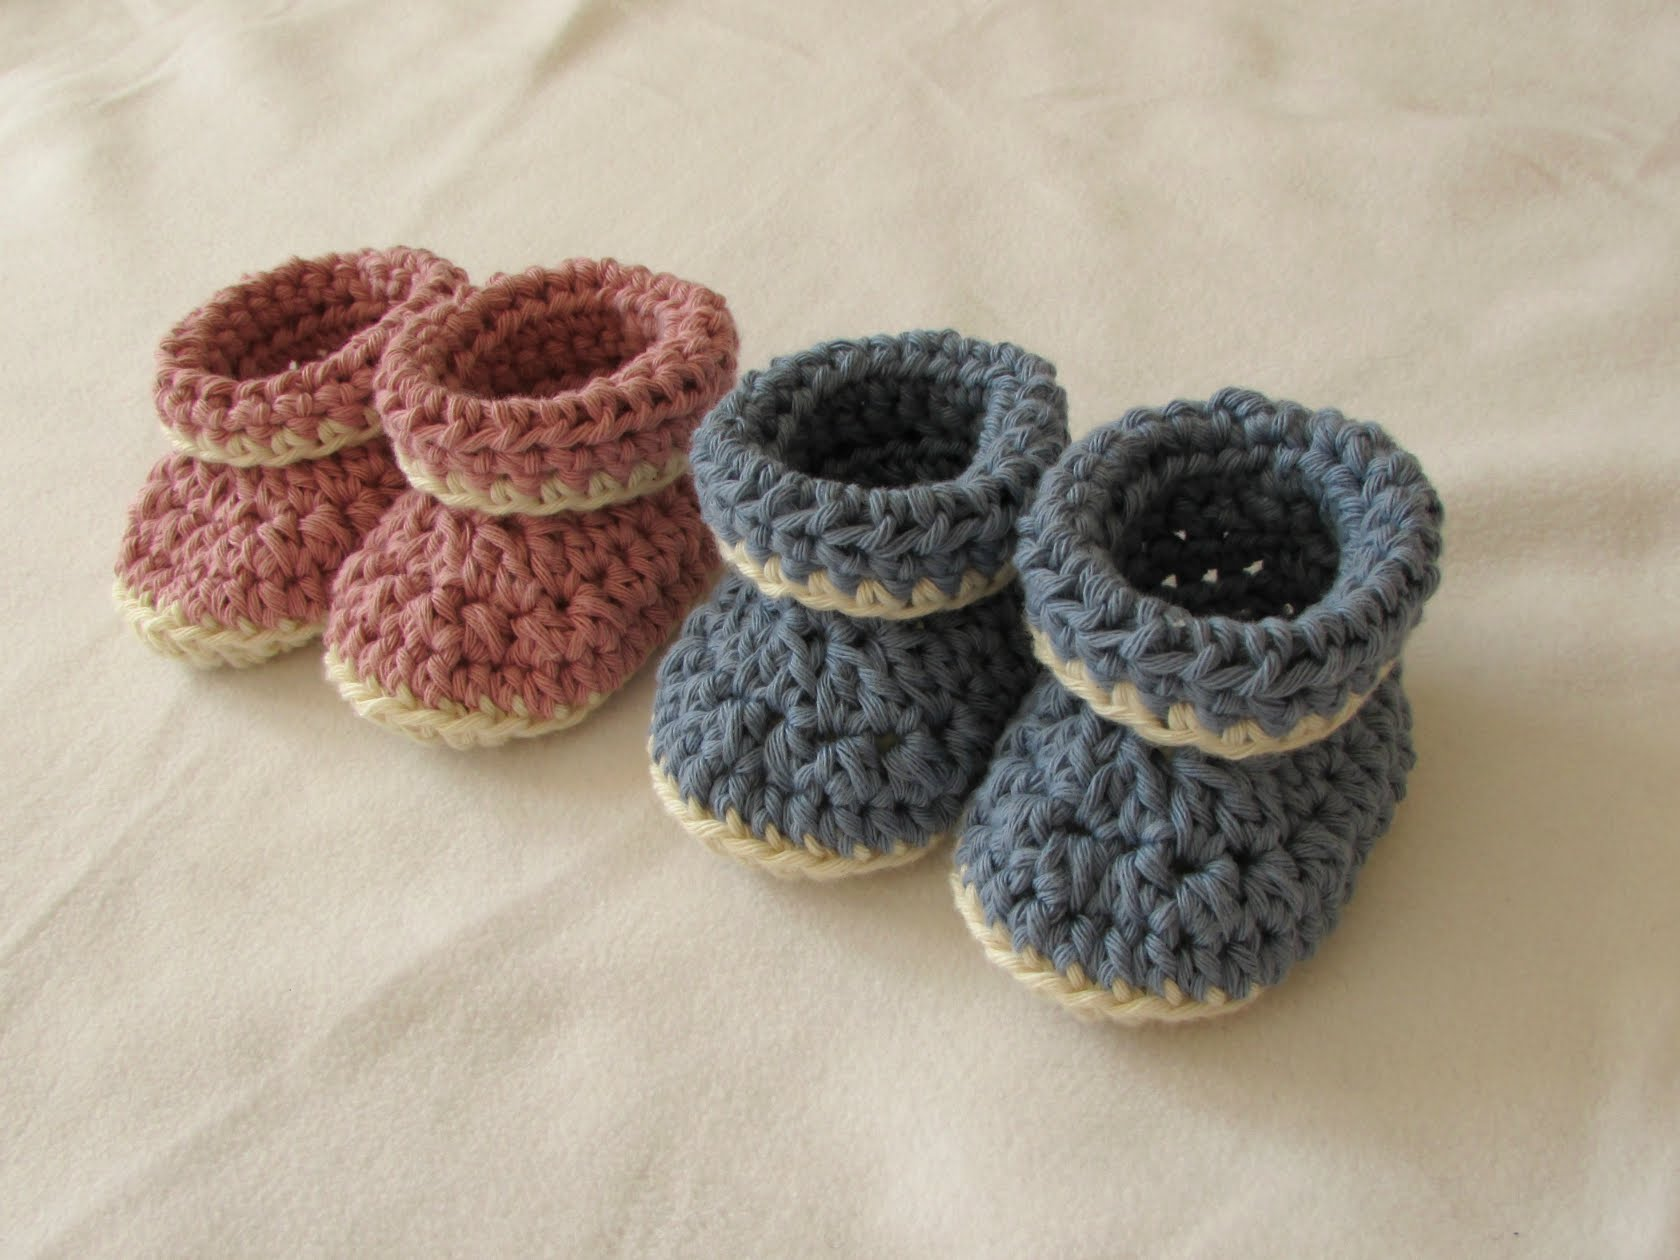 how to crochet baby booties very easy crochet cuffed baby booties tutorial - roll top baby shoes for palrpfs